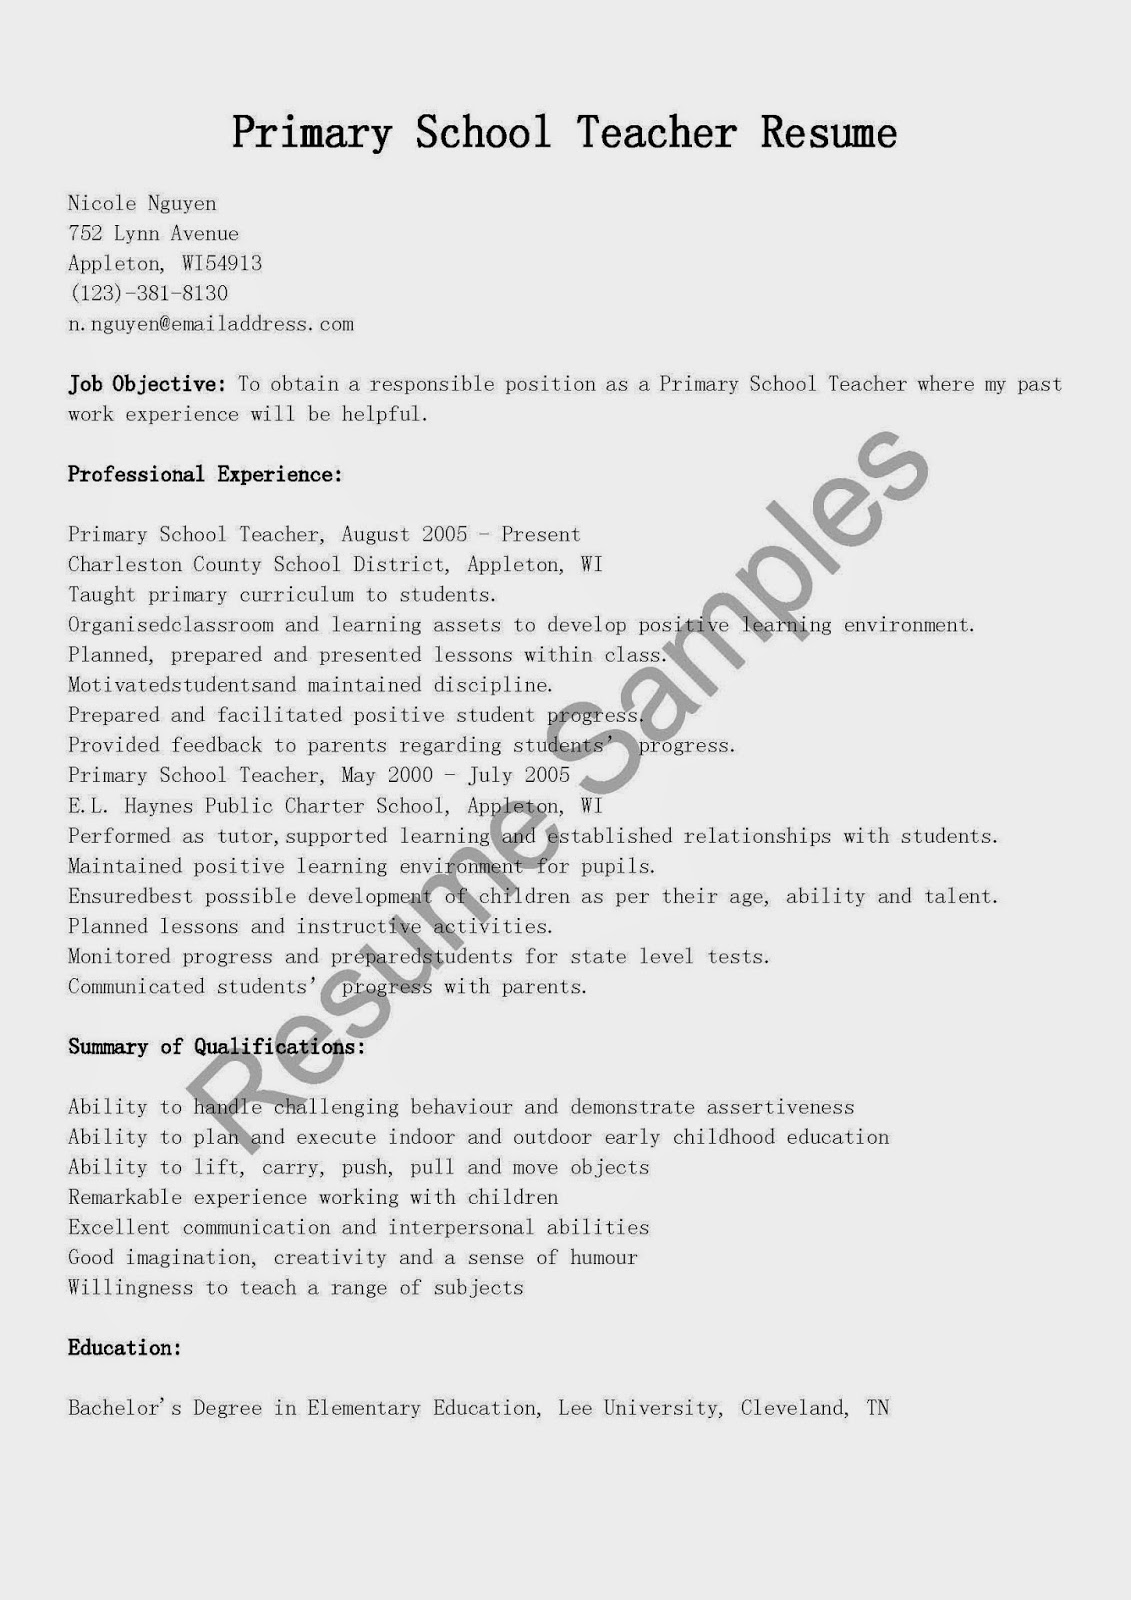 resume synonyms for responsible